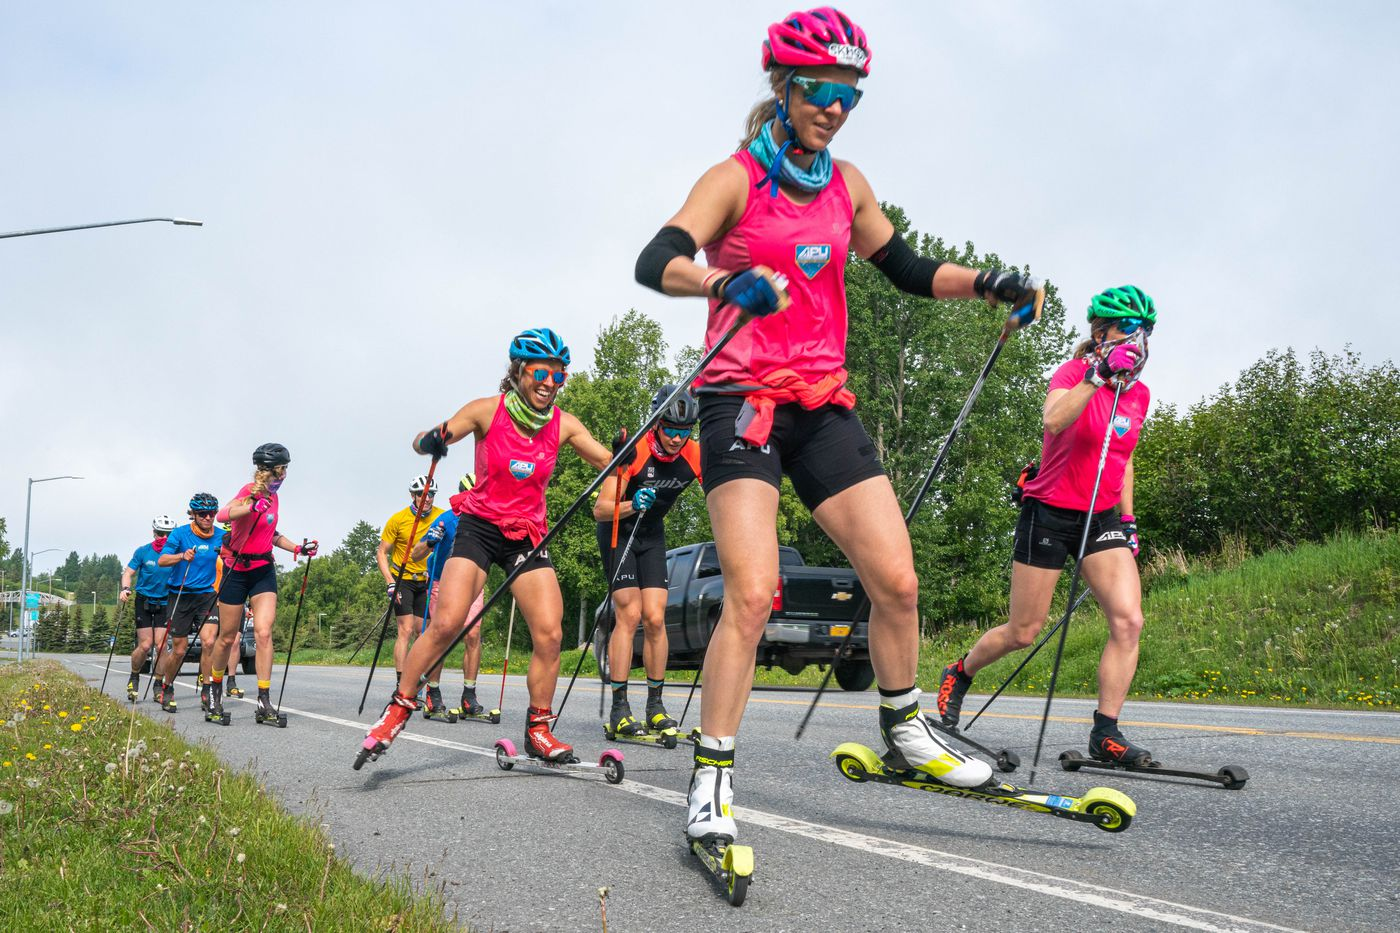 Sadie Maubet Bjornsen rollerskis with the Alaska Pacific University ski team during a 50-kilometer training session on June 10, 2020 at Kincaid Park in Anchorage. (Loren Holmes / ADN)